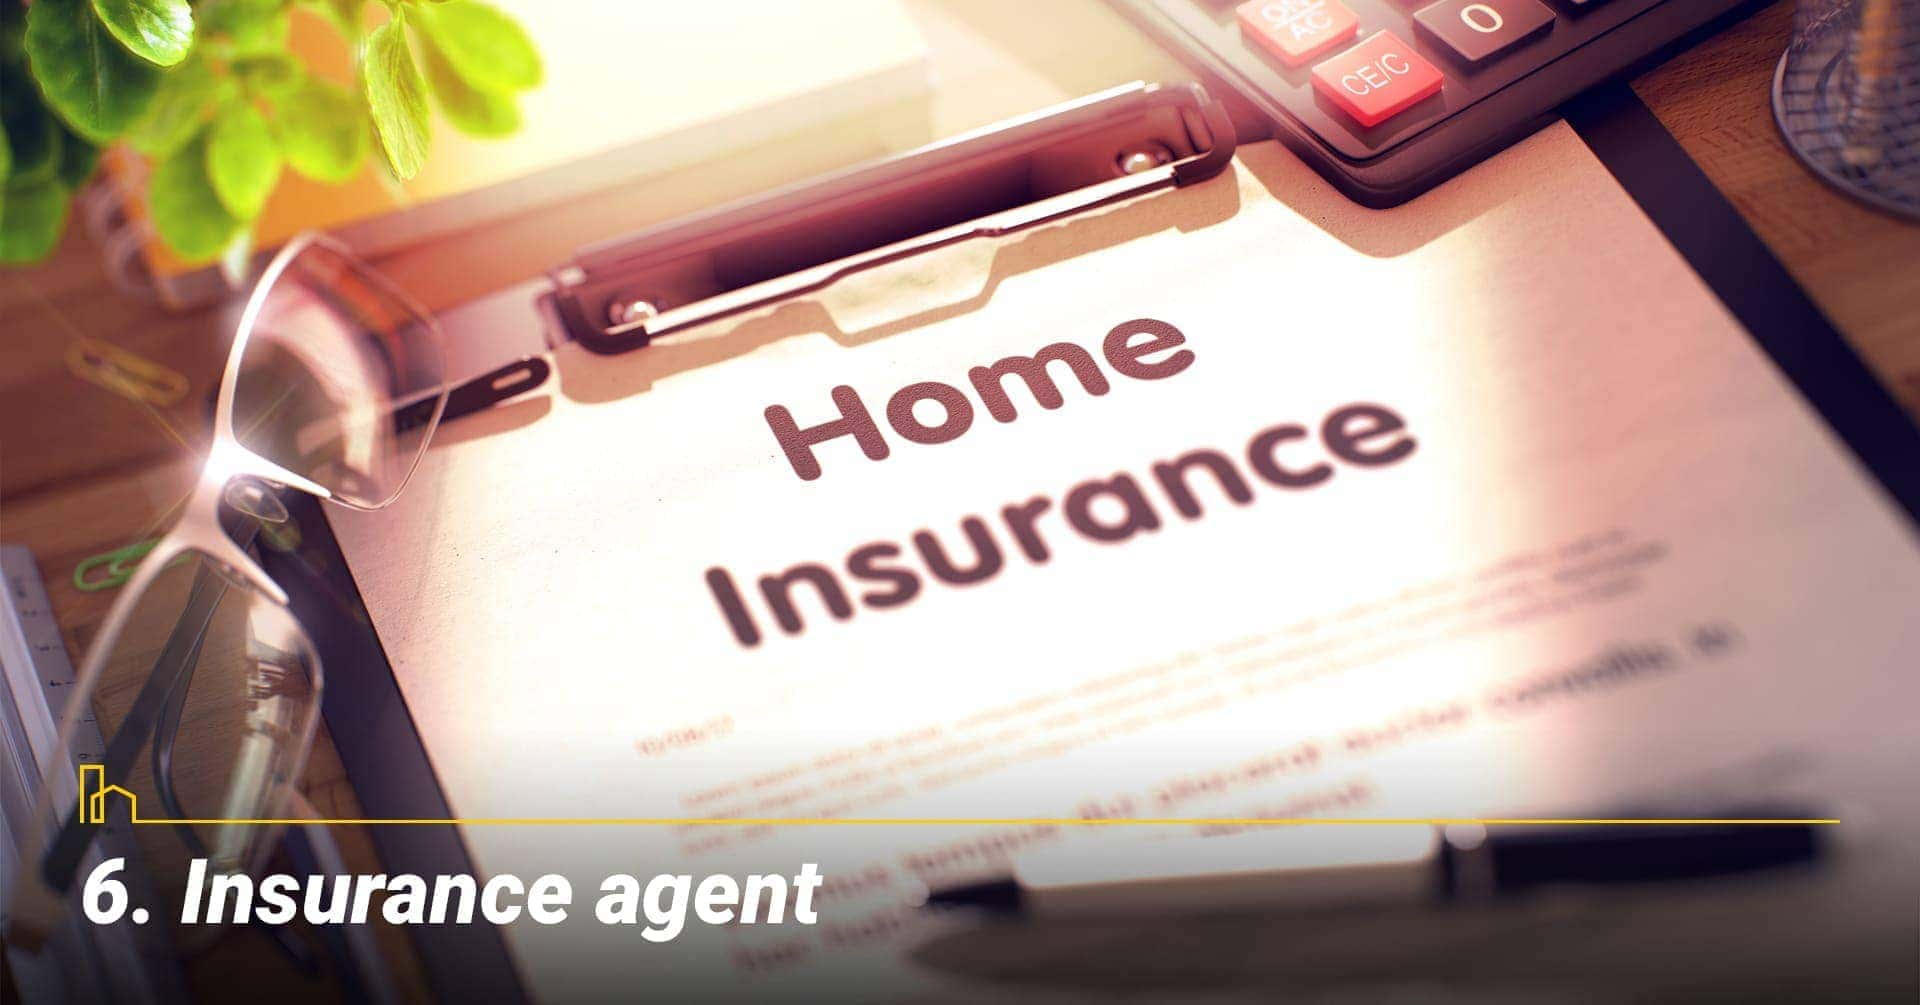 Insurance agent, talk with an insurance agent about your need